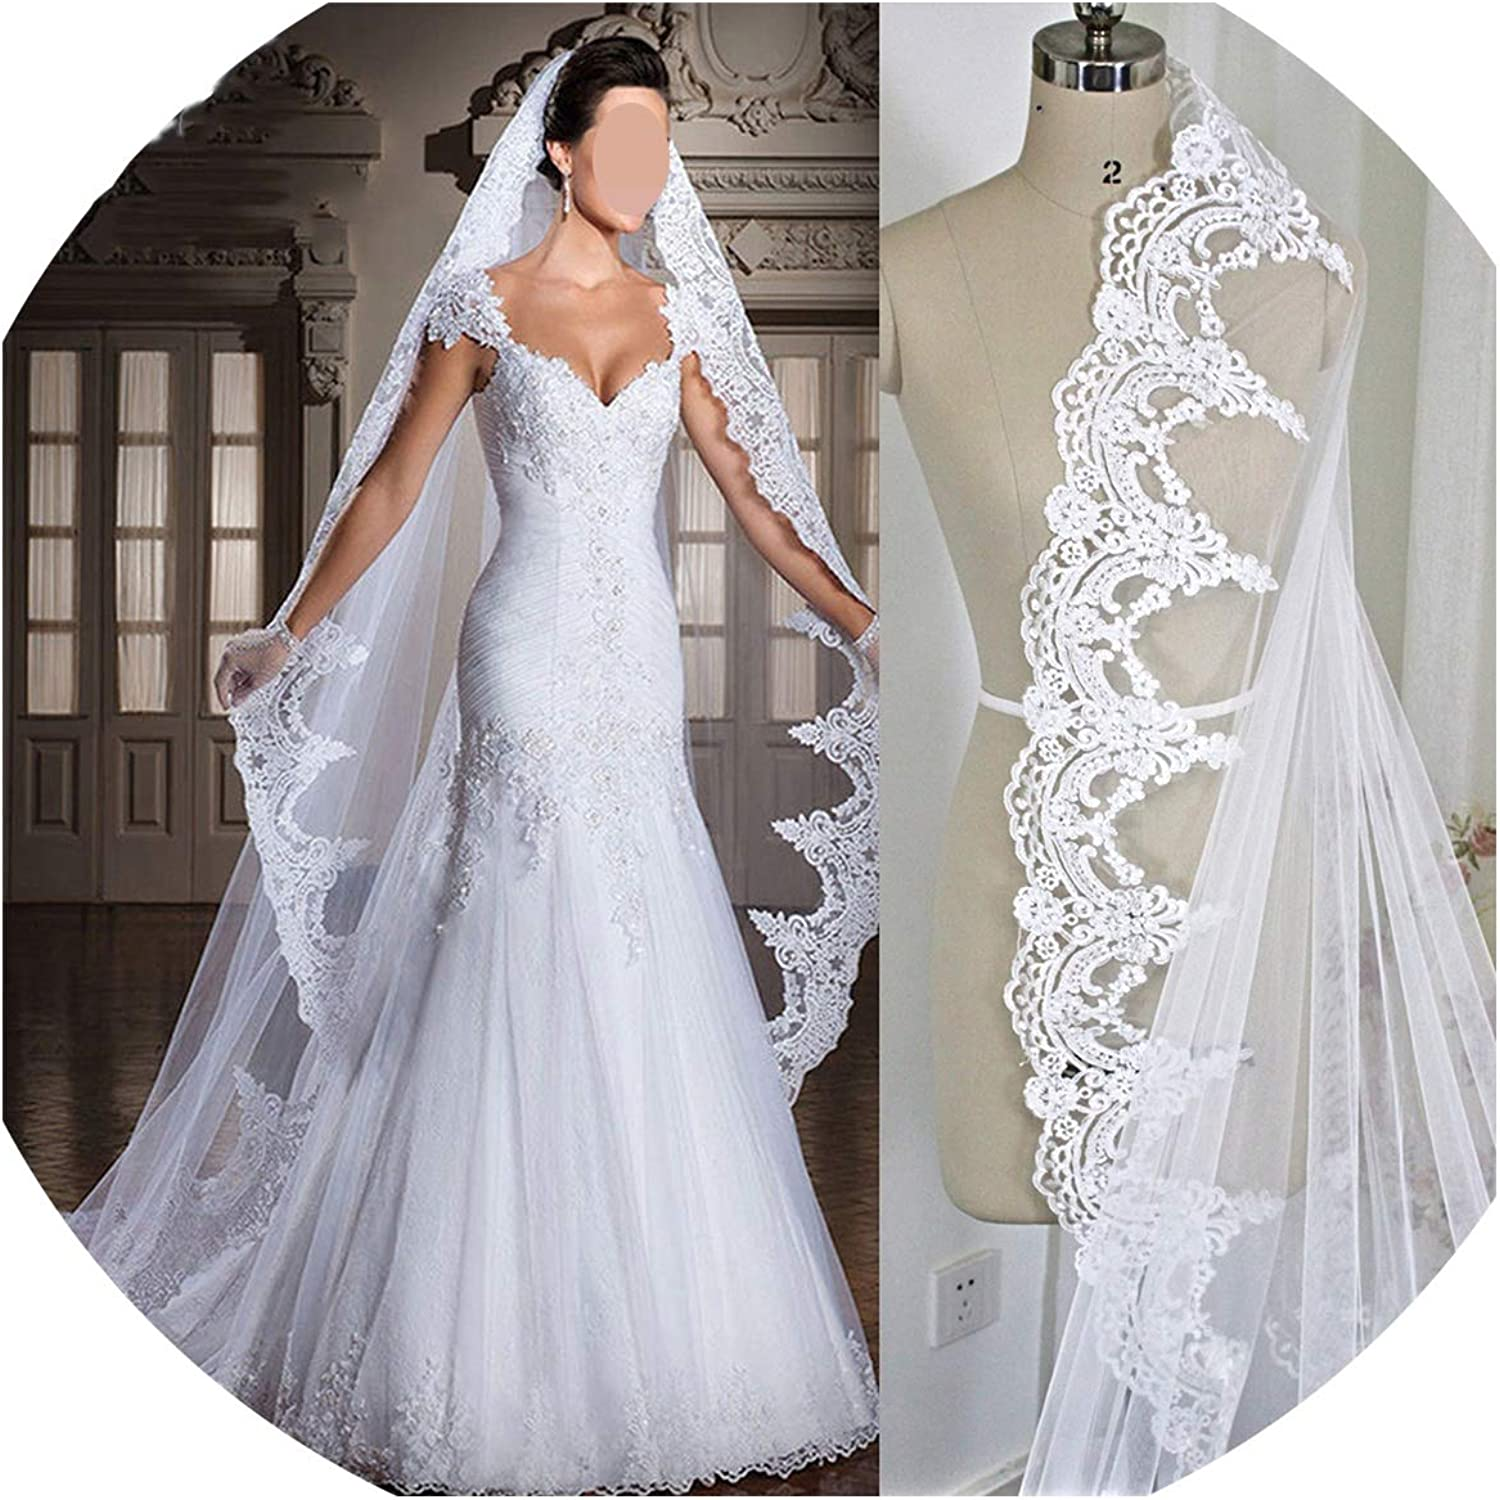 White//Ivory 1 Layer Wedding Veil Bridal Veils Lace Edge With Comb